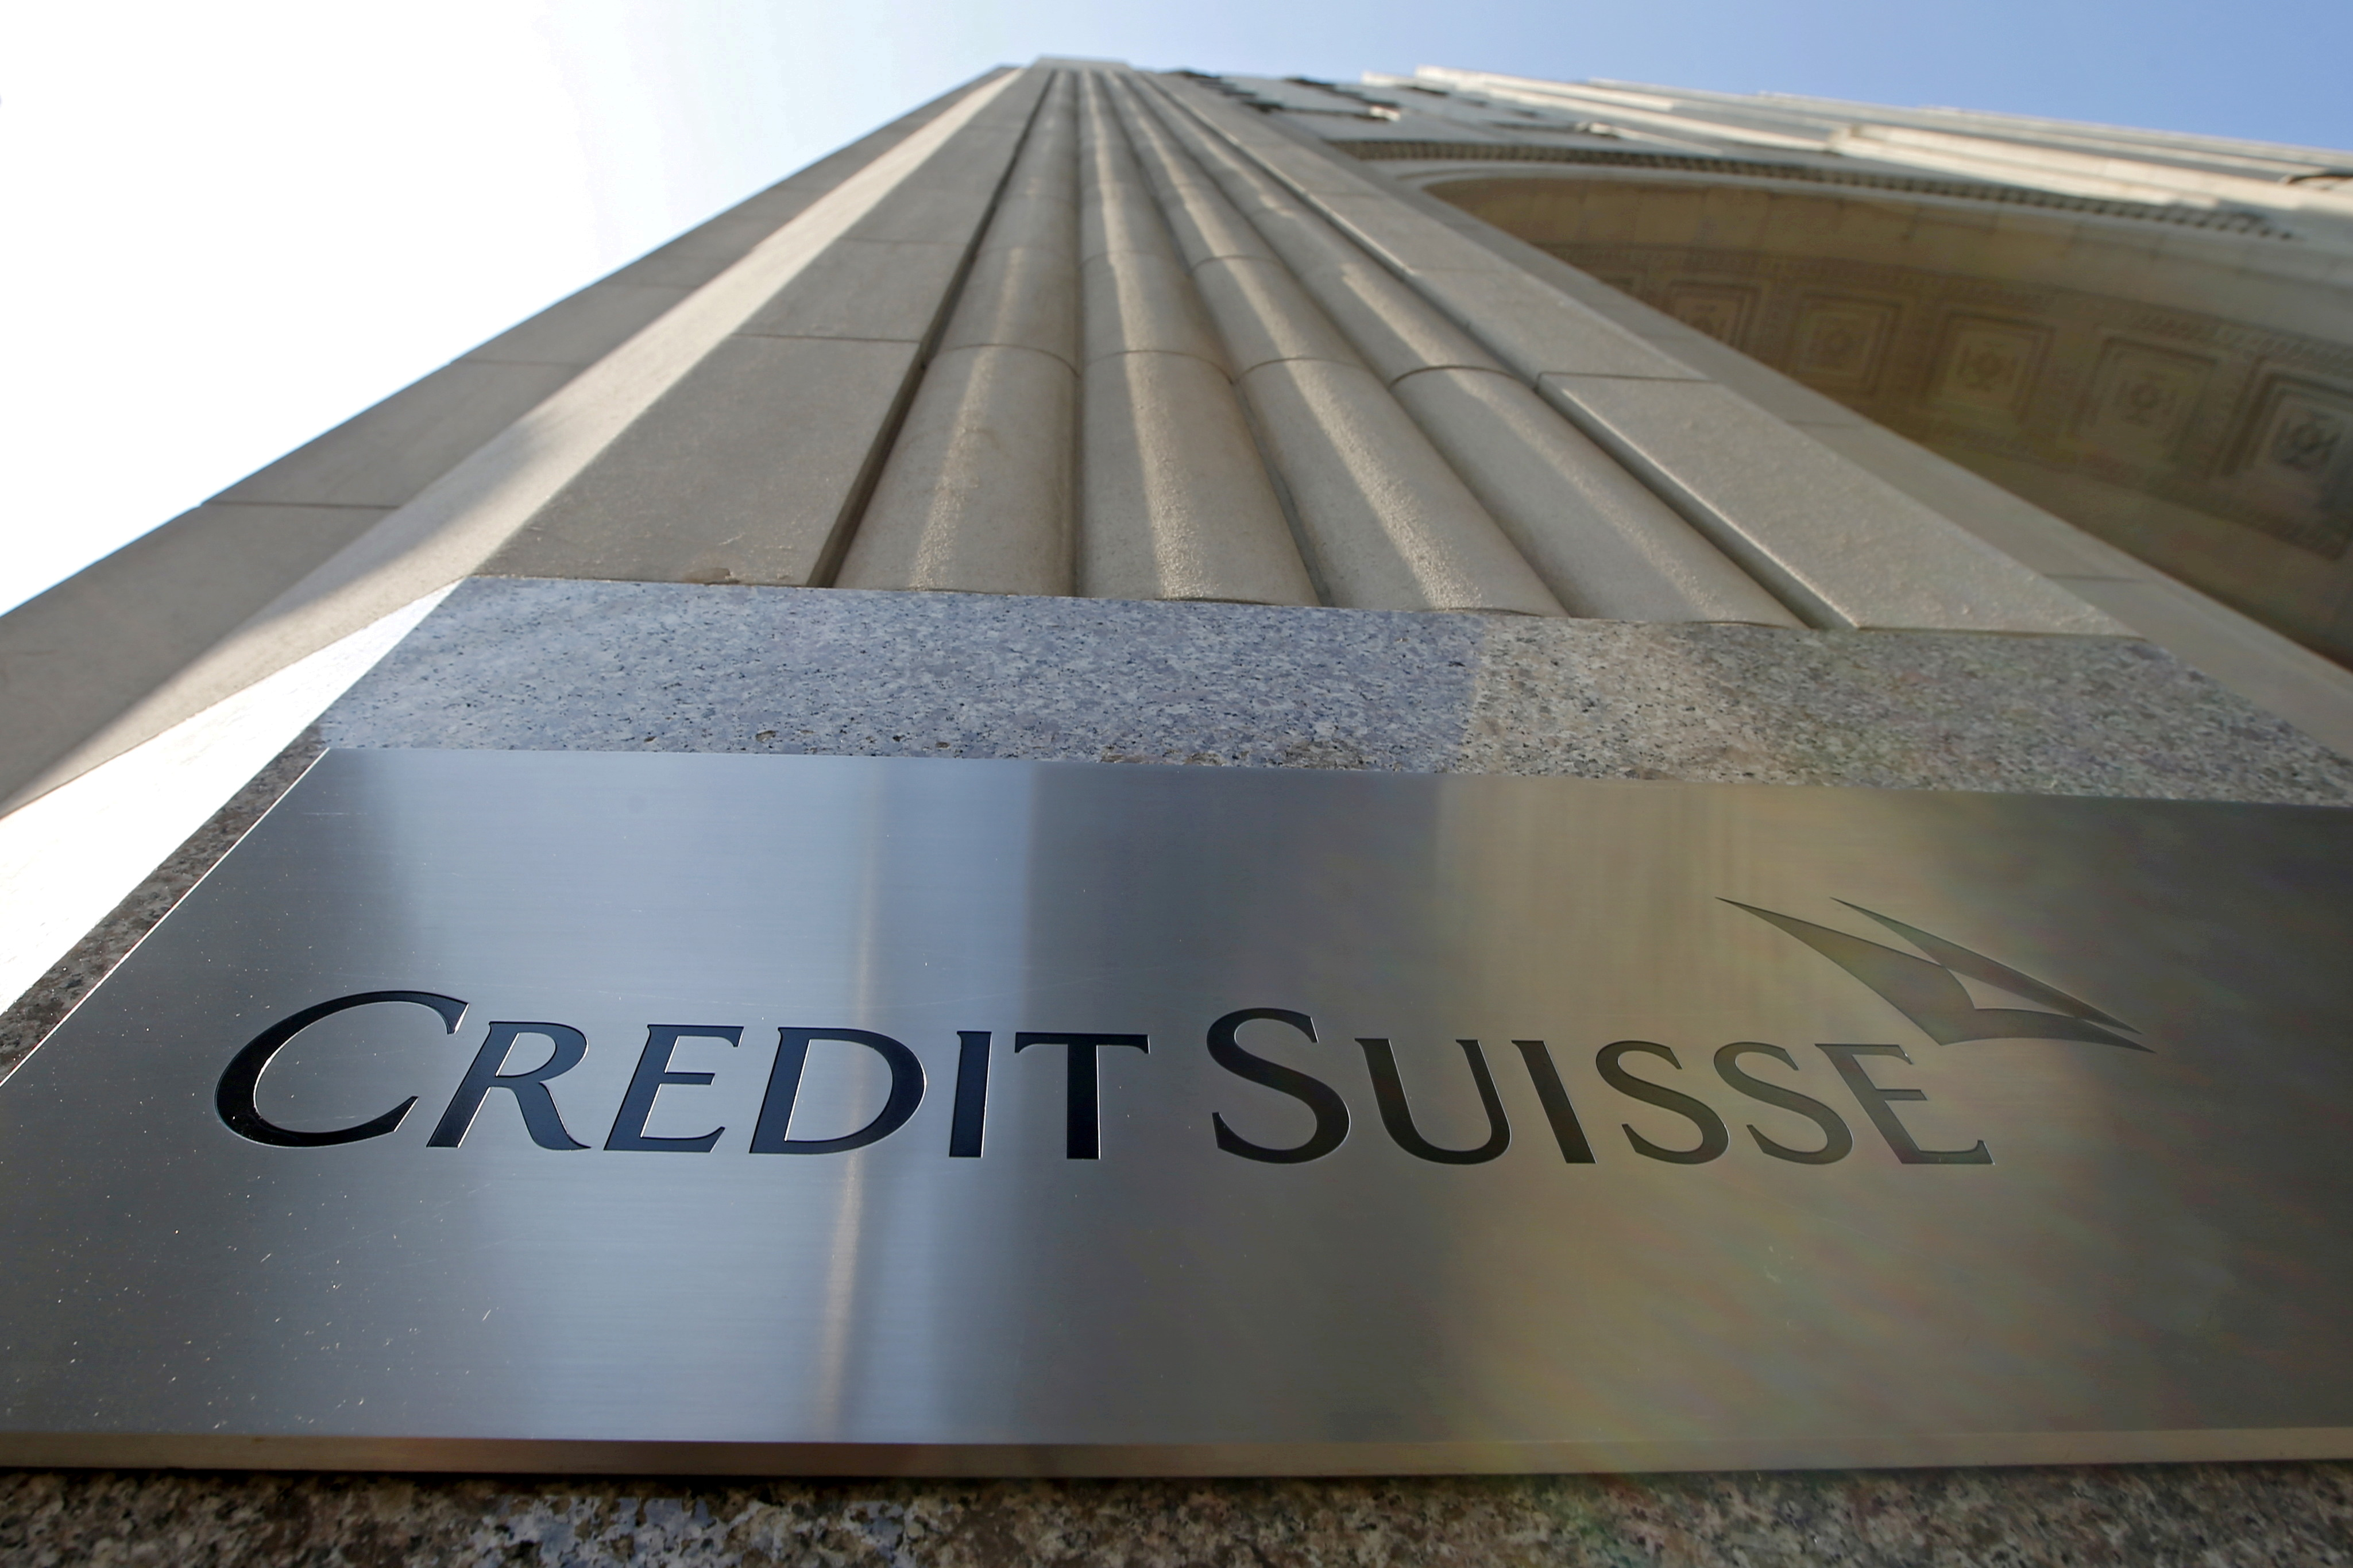 A Credit Suisse sign is seen on the exterior of their Americas headquarters in the Manhattan borough of New York City, September 1, 2015.  REUTERS/Mike Segar/File Photo